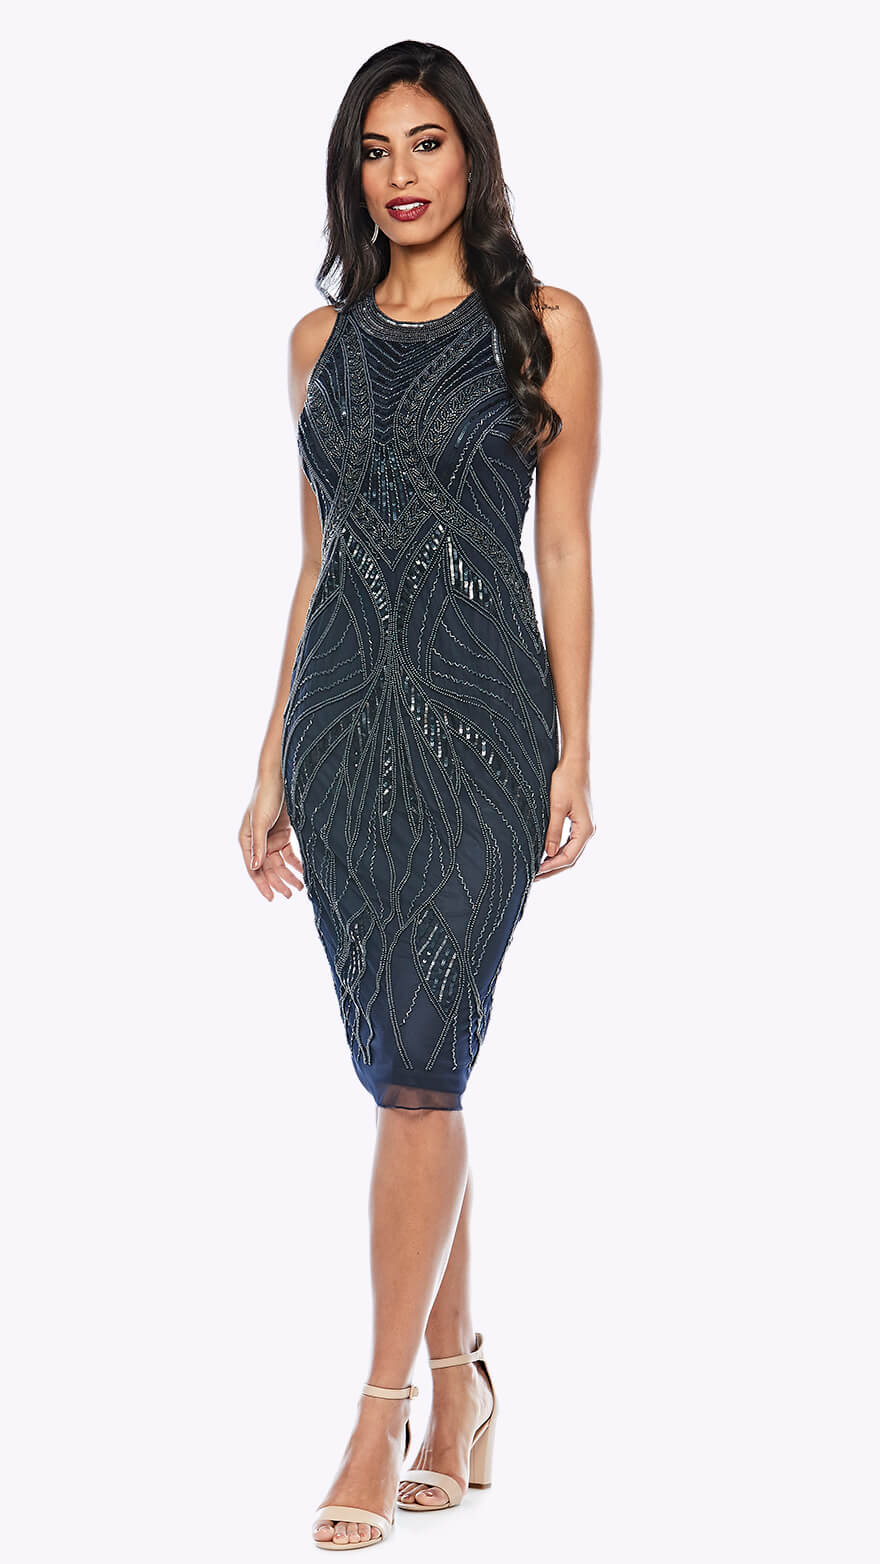 Z0200 Cocktail length beaded gown in organic pattern with rounded neckline